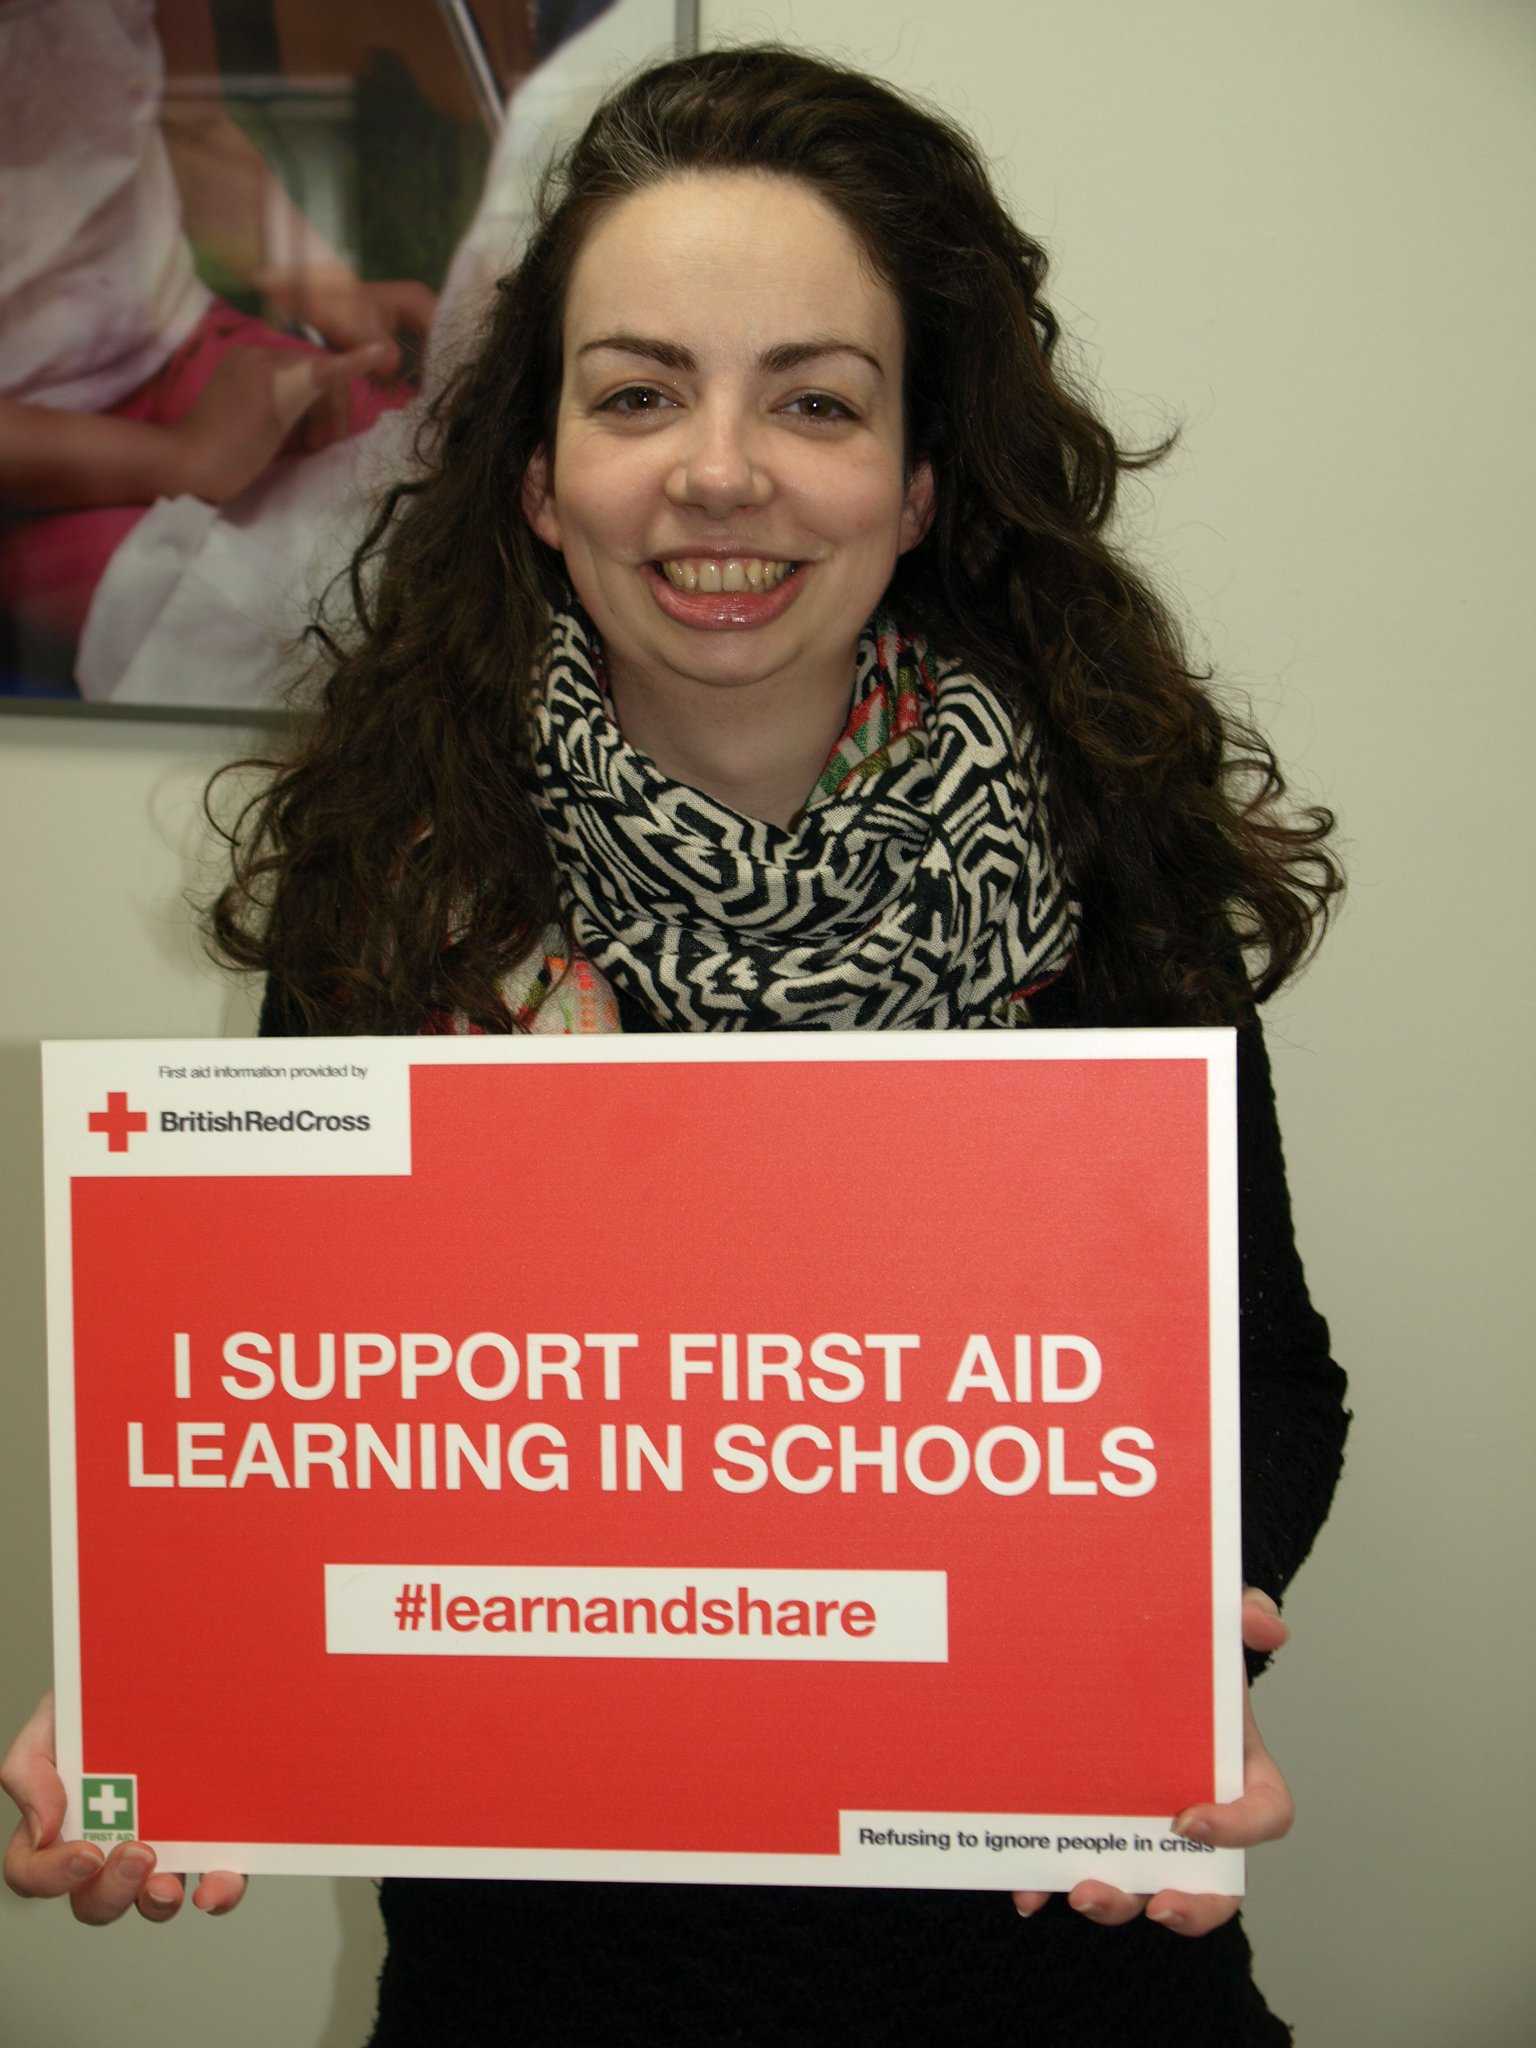 Esther Coggins supports first aid learning in schools in Wales. #lifesavingskills are essential so  #learnandshare with @RedCrossWales https://t.co/NWgIAqelt8